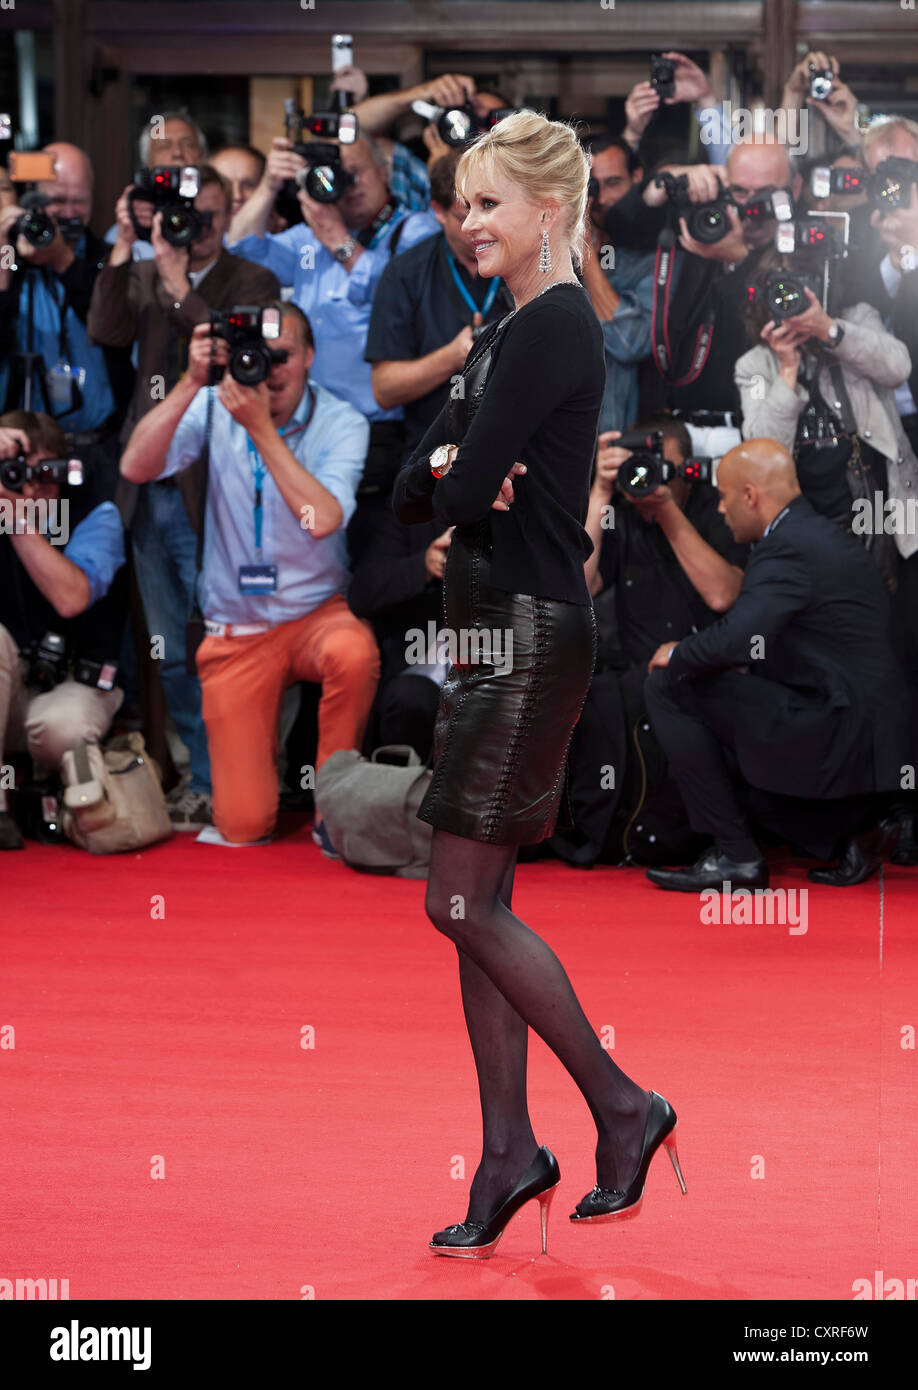 Actress Melanie Griffith on the red carpet at the Filmfest in Munich, Bavaria, Germany, Europe - Stock Image